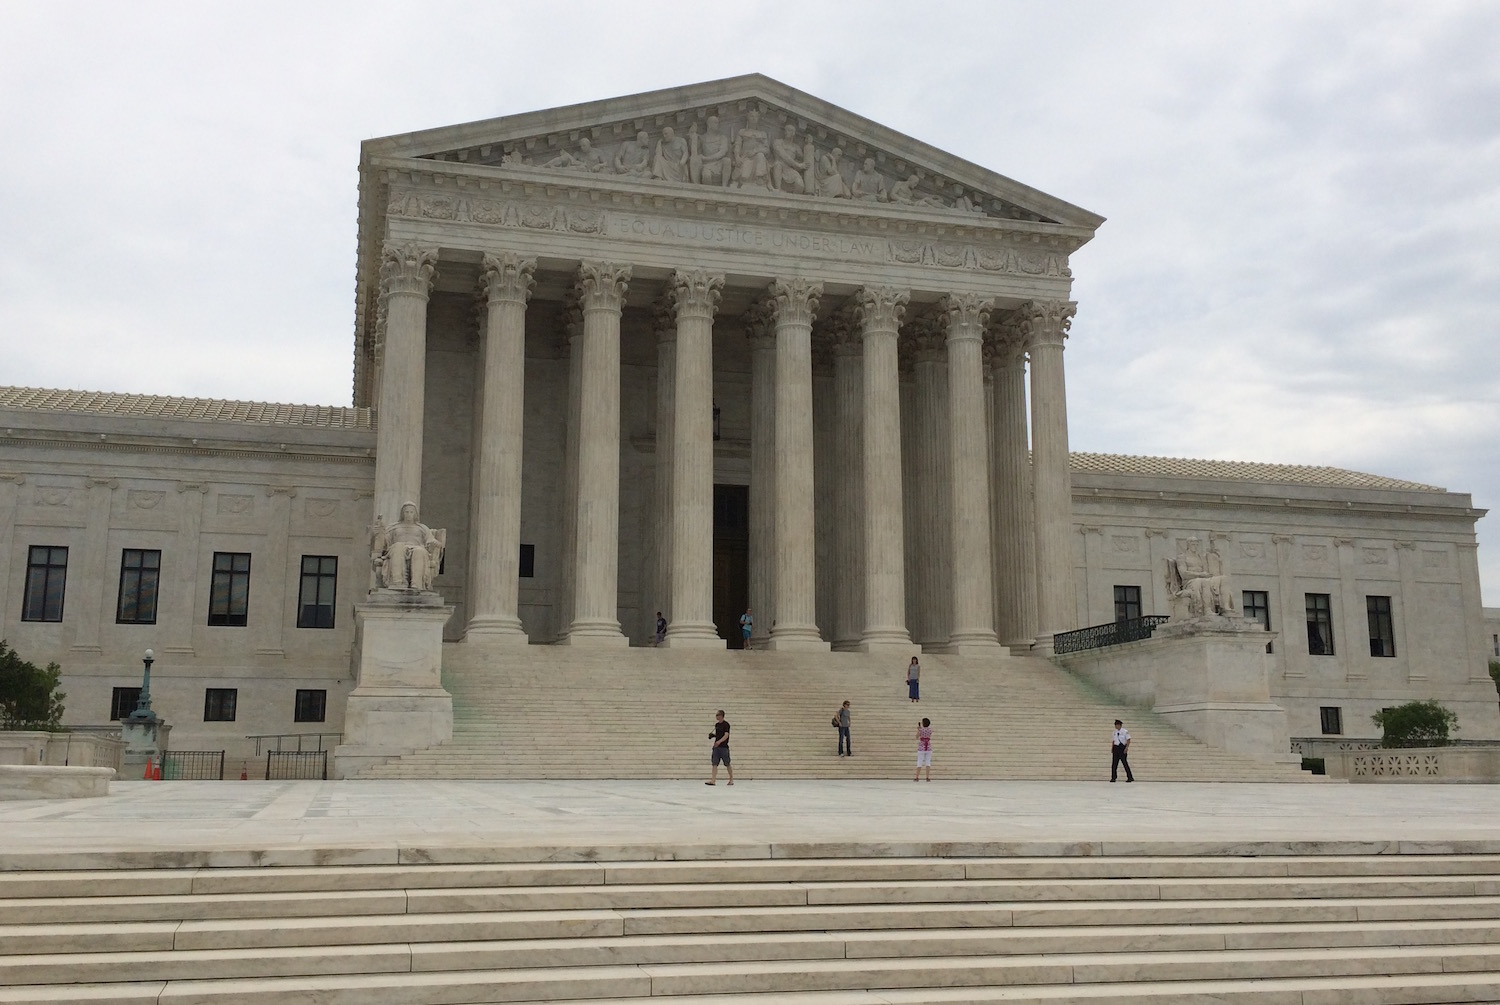 Supreme Court takes up sports betting case whose outcome could impact tribes